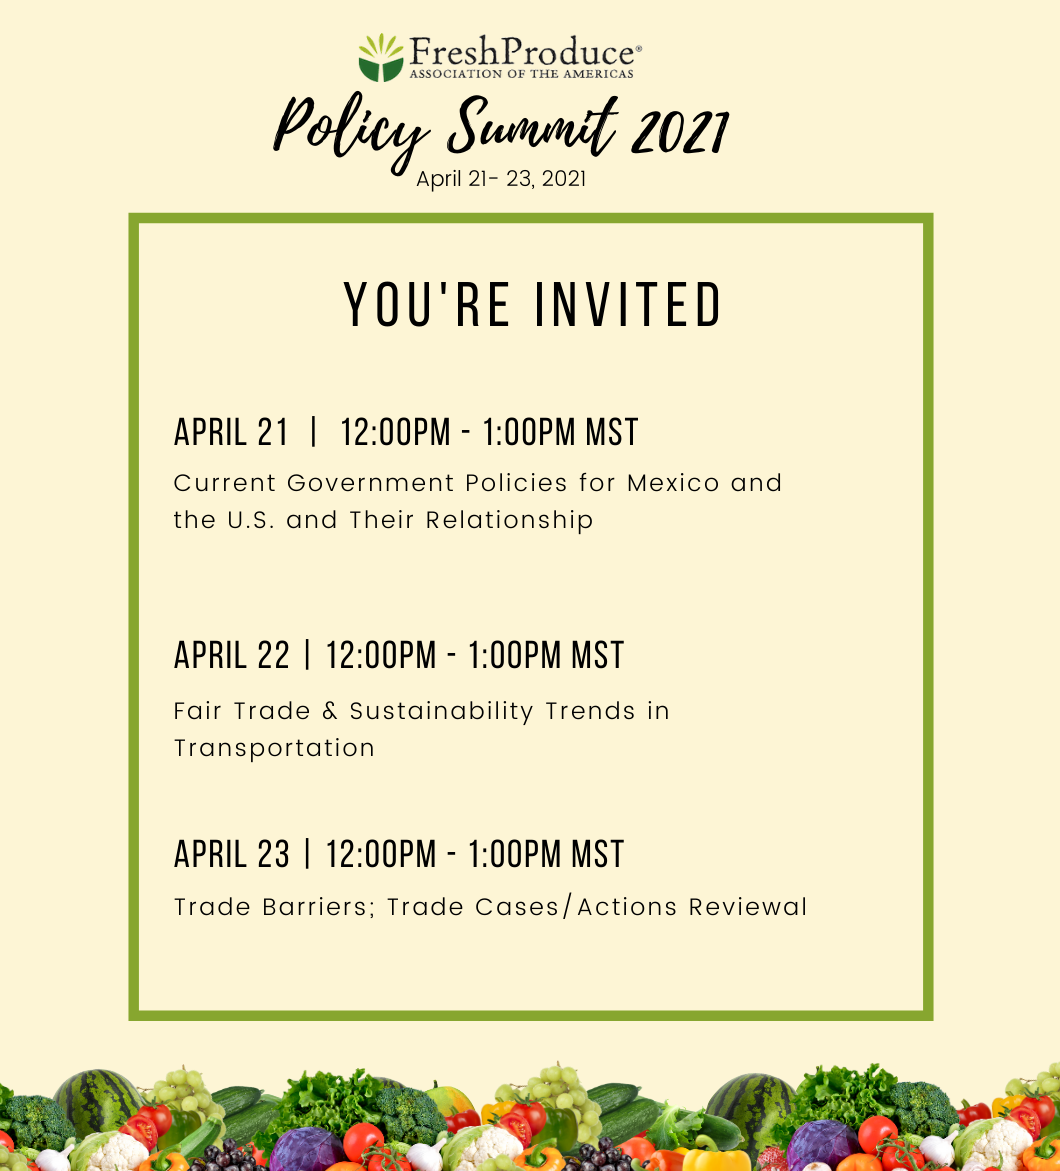 Spring Policy Summit 2021